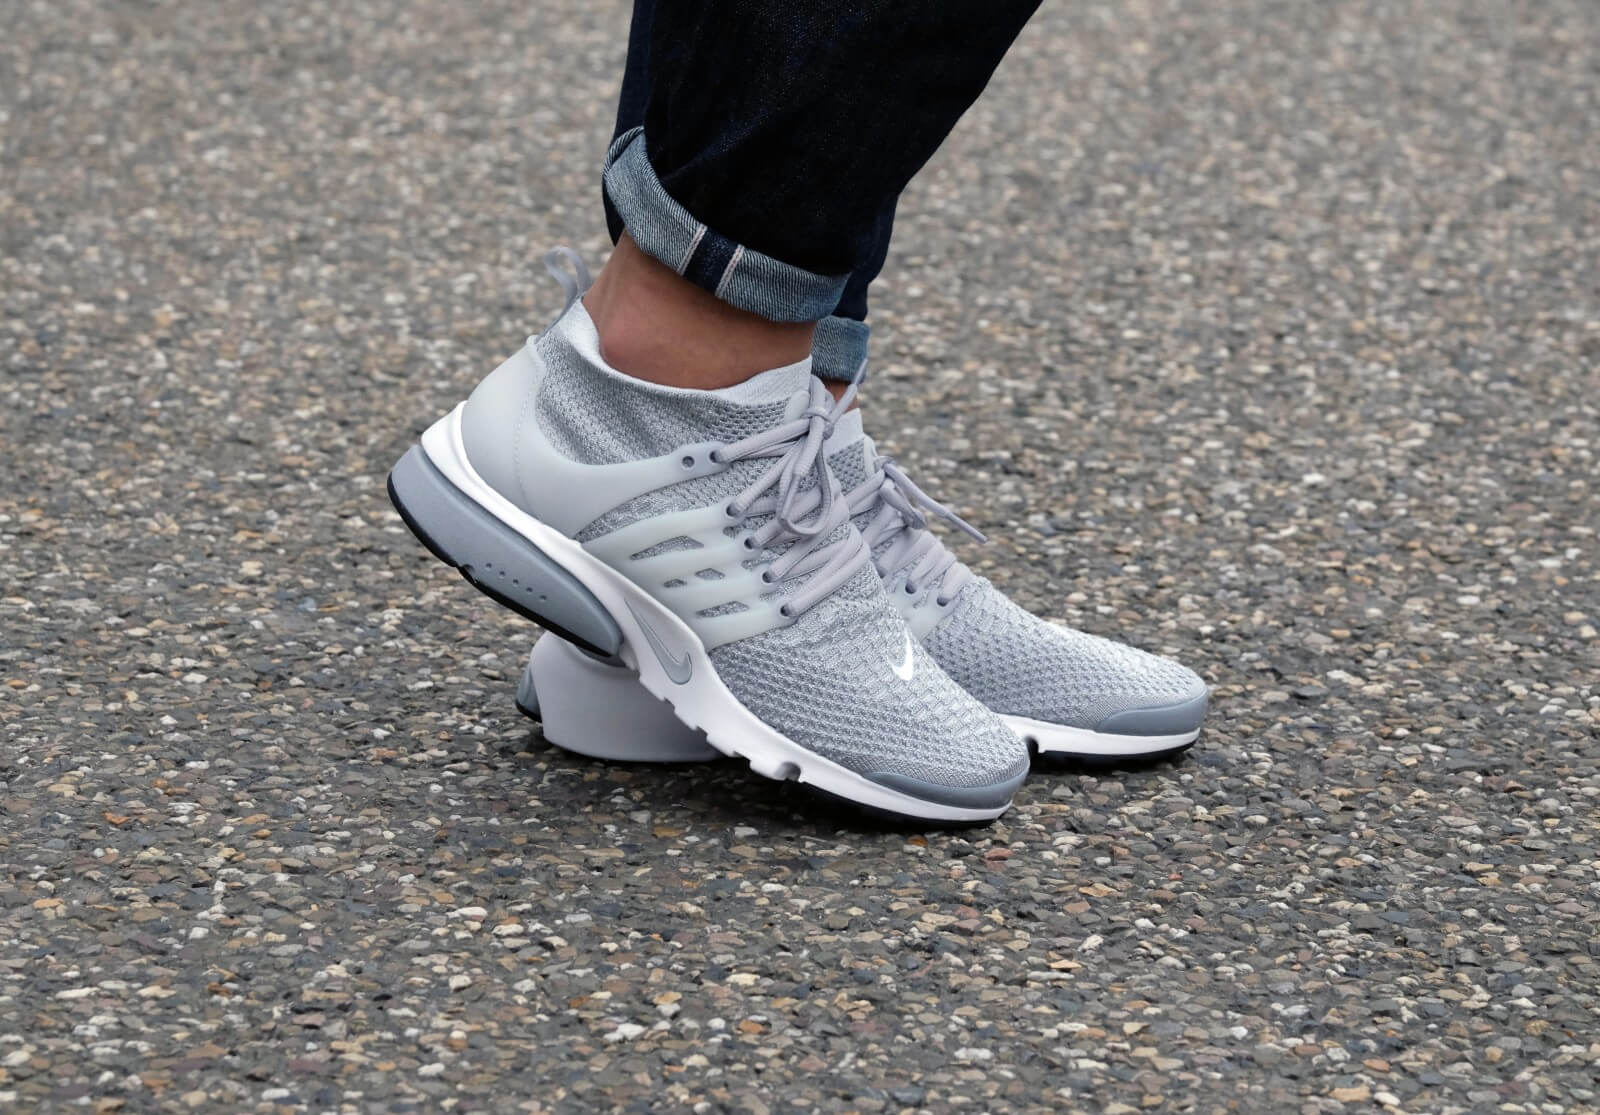 ... 829553 001 Mens Sport Running Shoes Nike Air Presto Flyknit Ultra -  Wolf Grey Pure Platinum White Black ... b2aa6d3d6